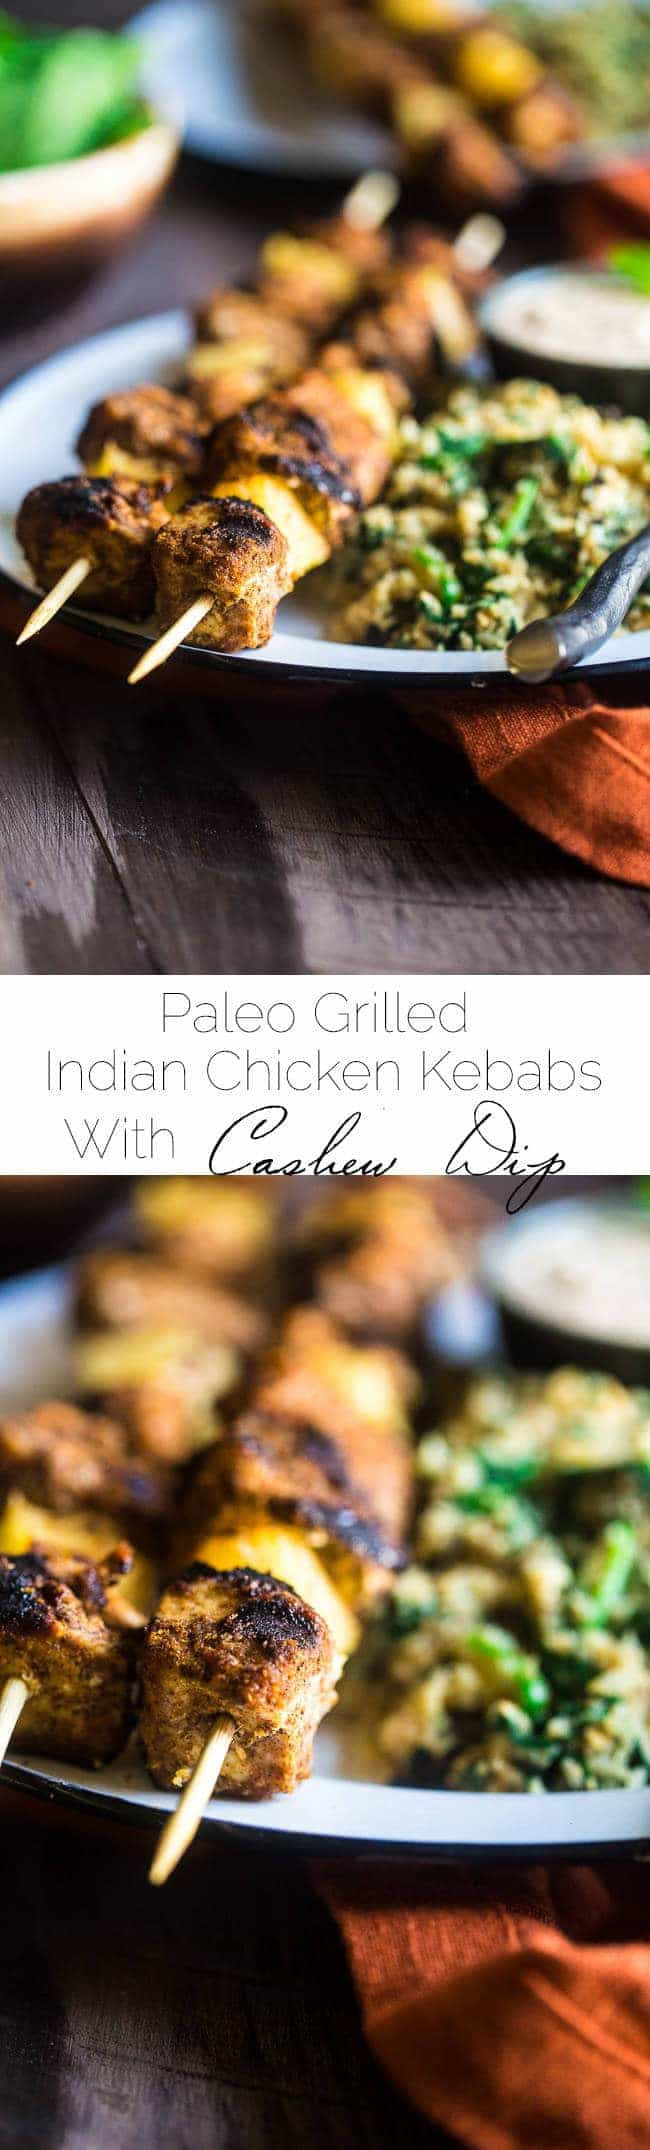 Indian Paleo Chicken Kebabs with Cashew Cream Dip - This chicken kebab recipe is served with coconut cashew cream for an easy, healthy, Summer meal that will take you to the Middle East! | Foodfaithfitness.com | @FoodFaithFit